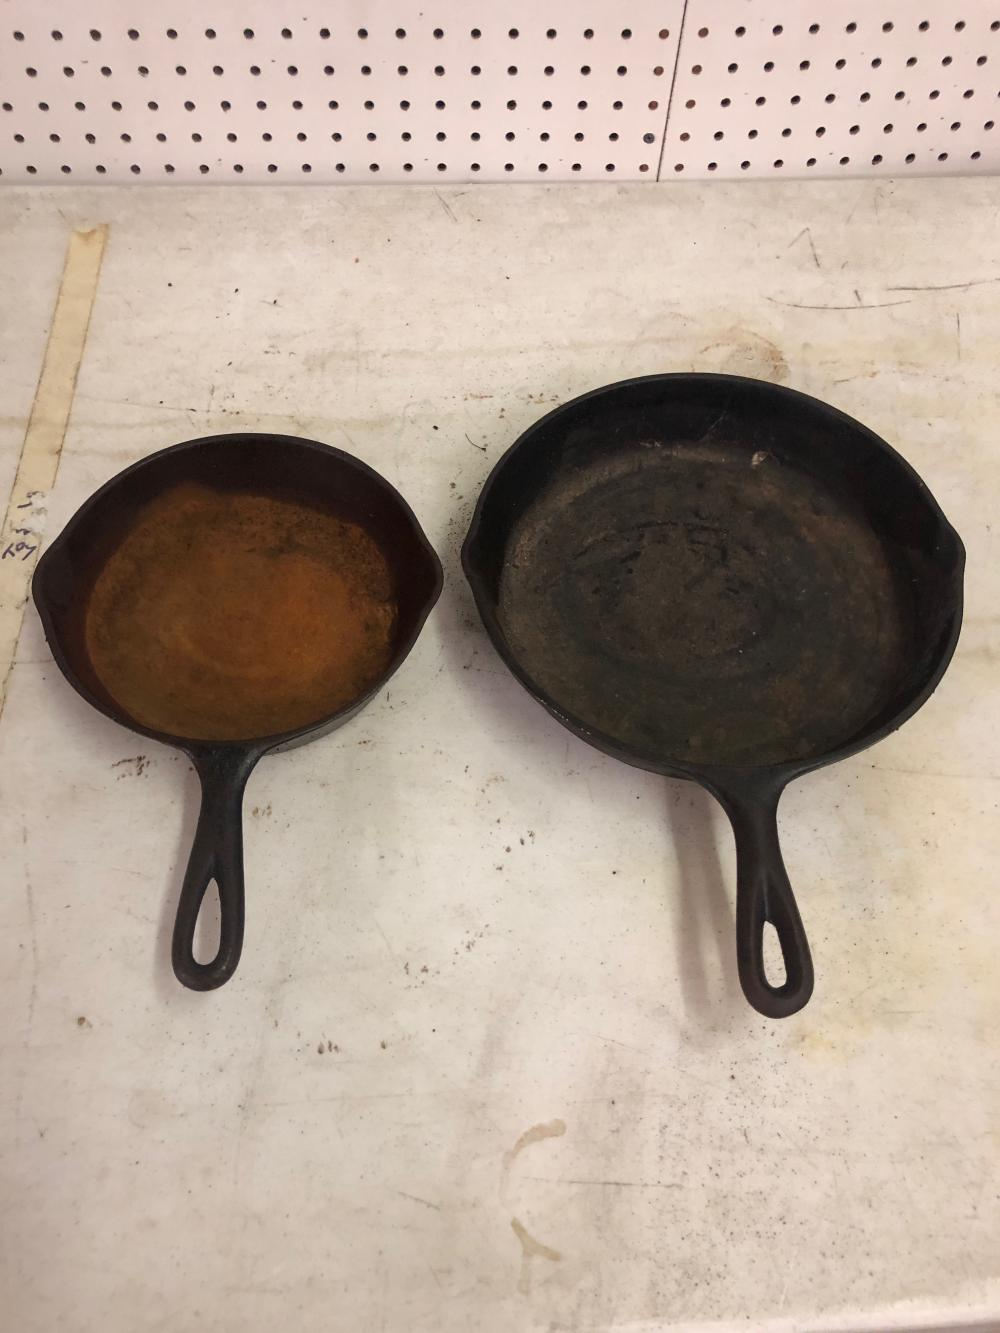 2 Cast Iron Skillets 10 1/2' Inch, and a 8' Inch